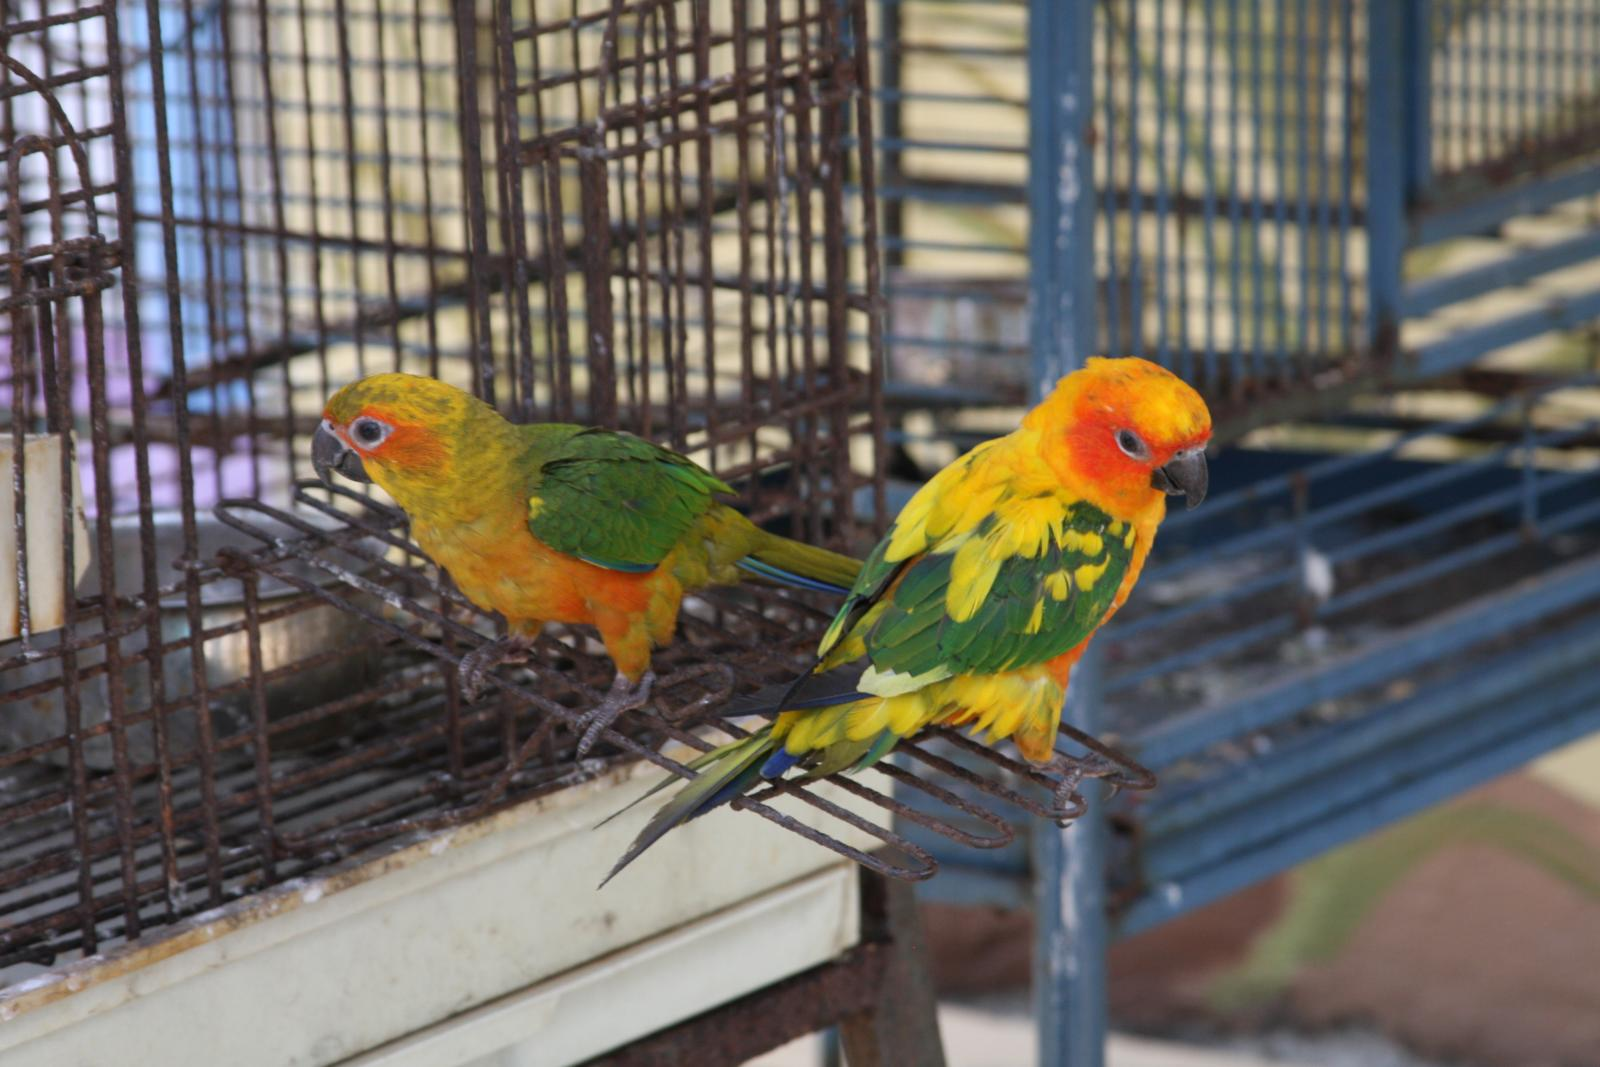 Sun Parakeets (also known as Sun Conures) in c...